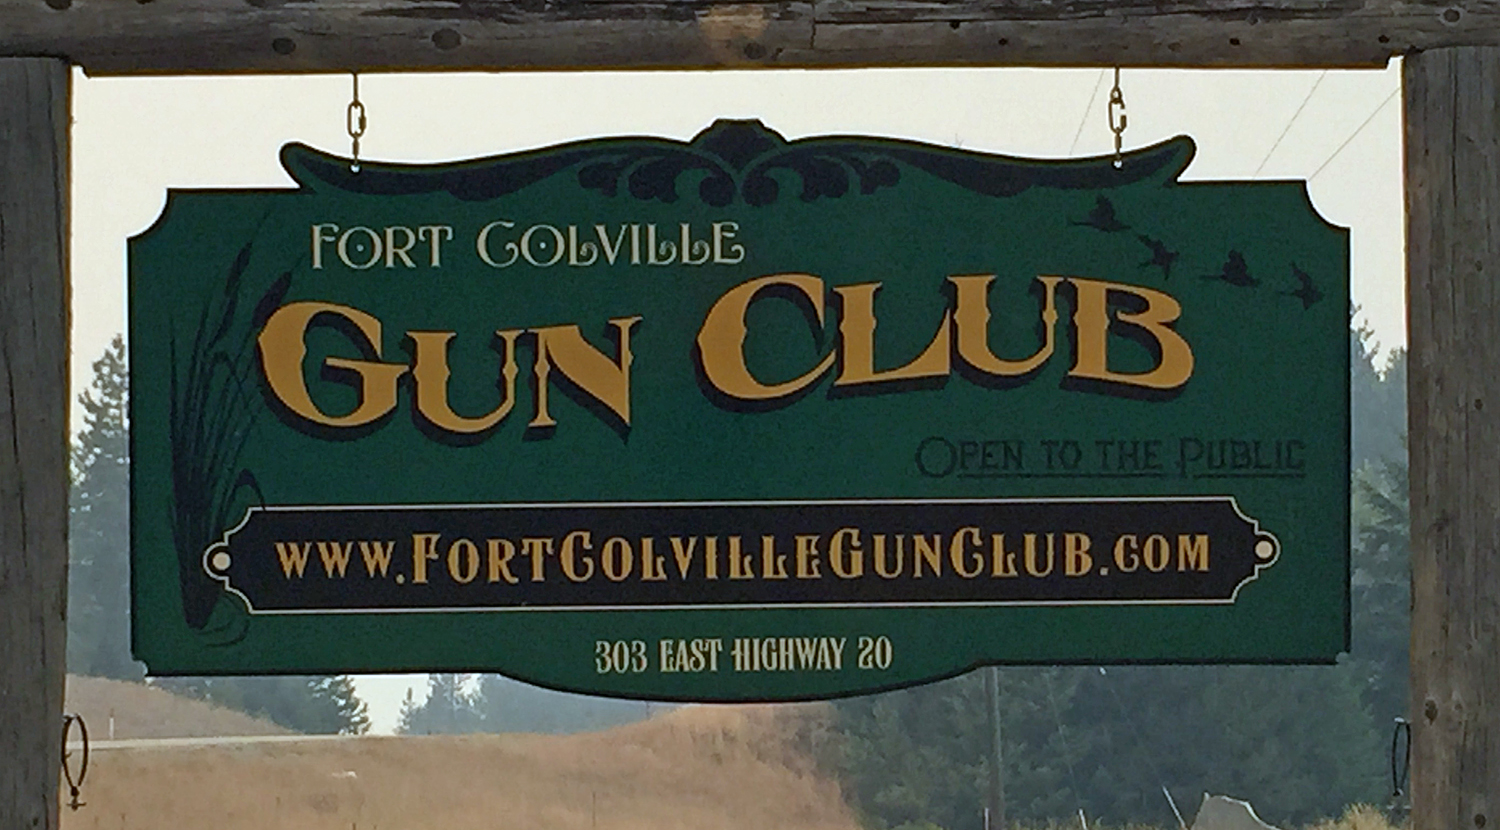 Fort Colville Gun Club